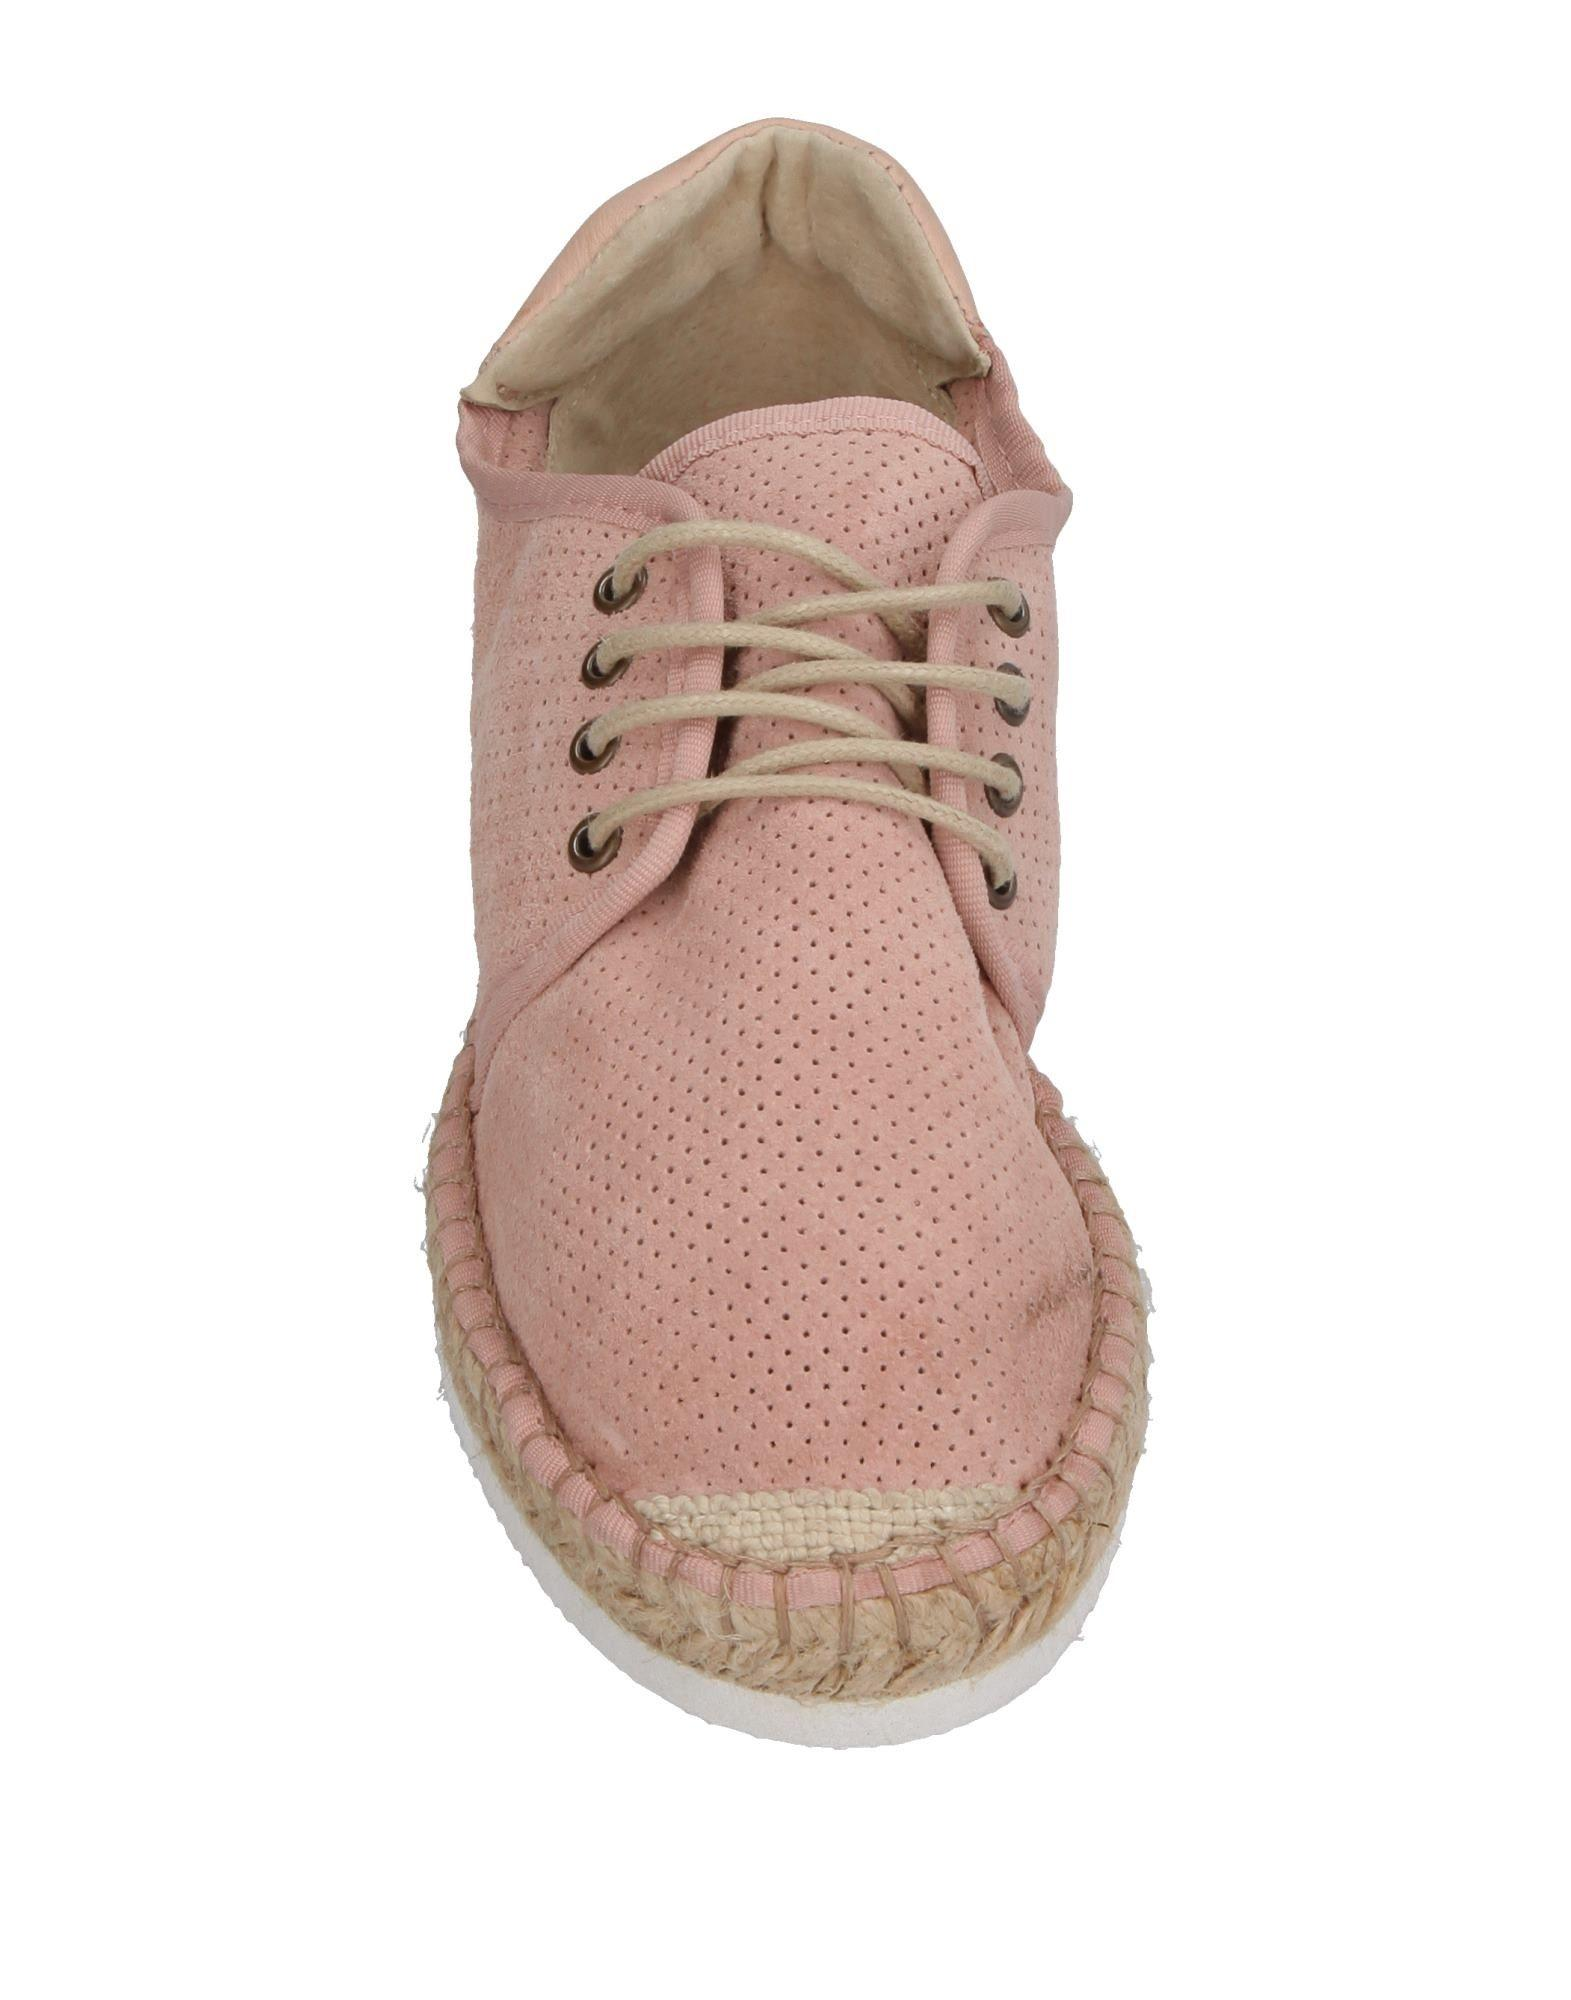 Jc Lewis Ford >> Lyst - Pieces Espadrilles in Pink